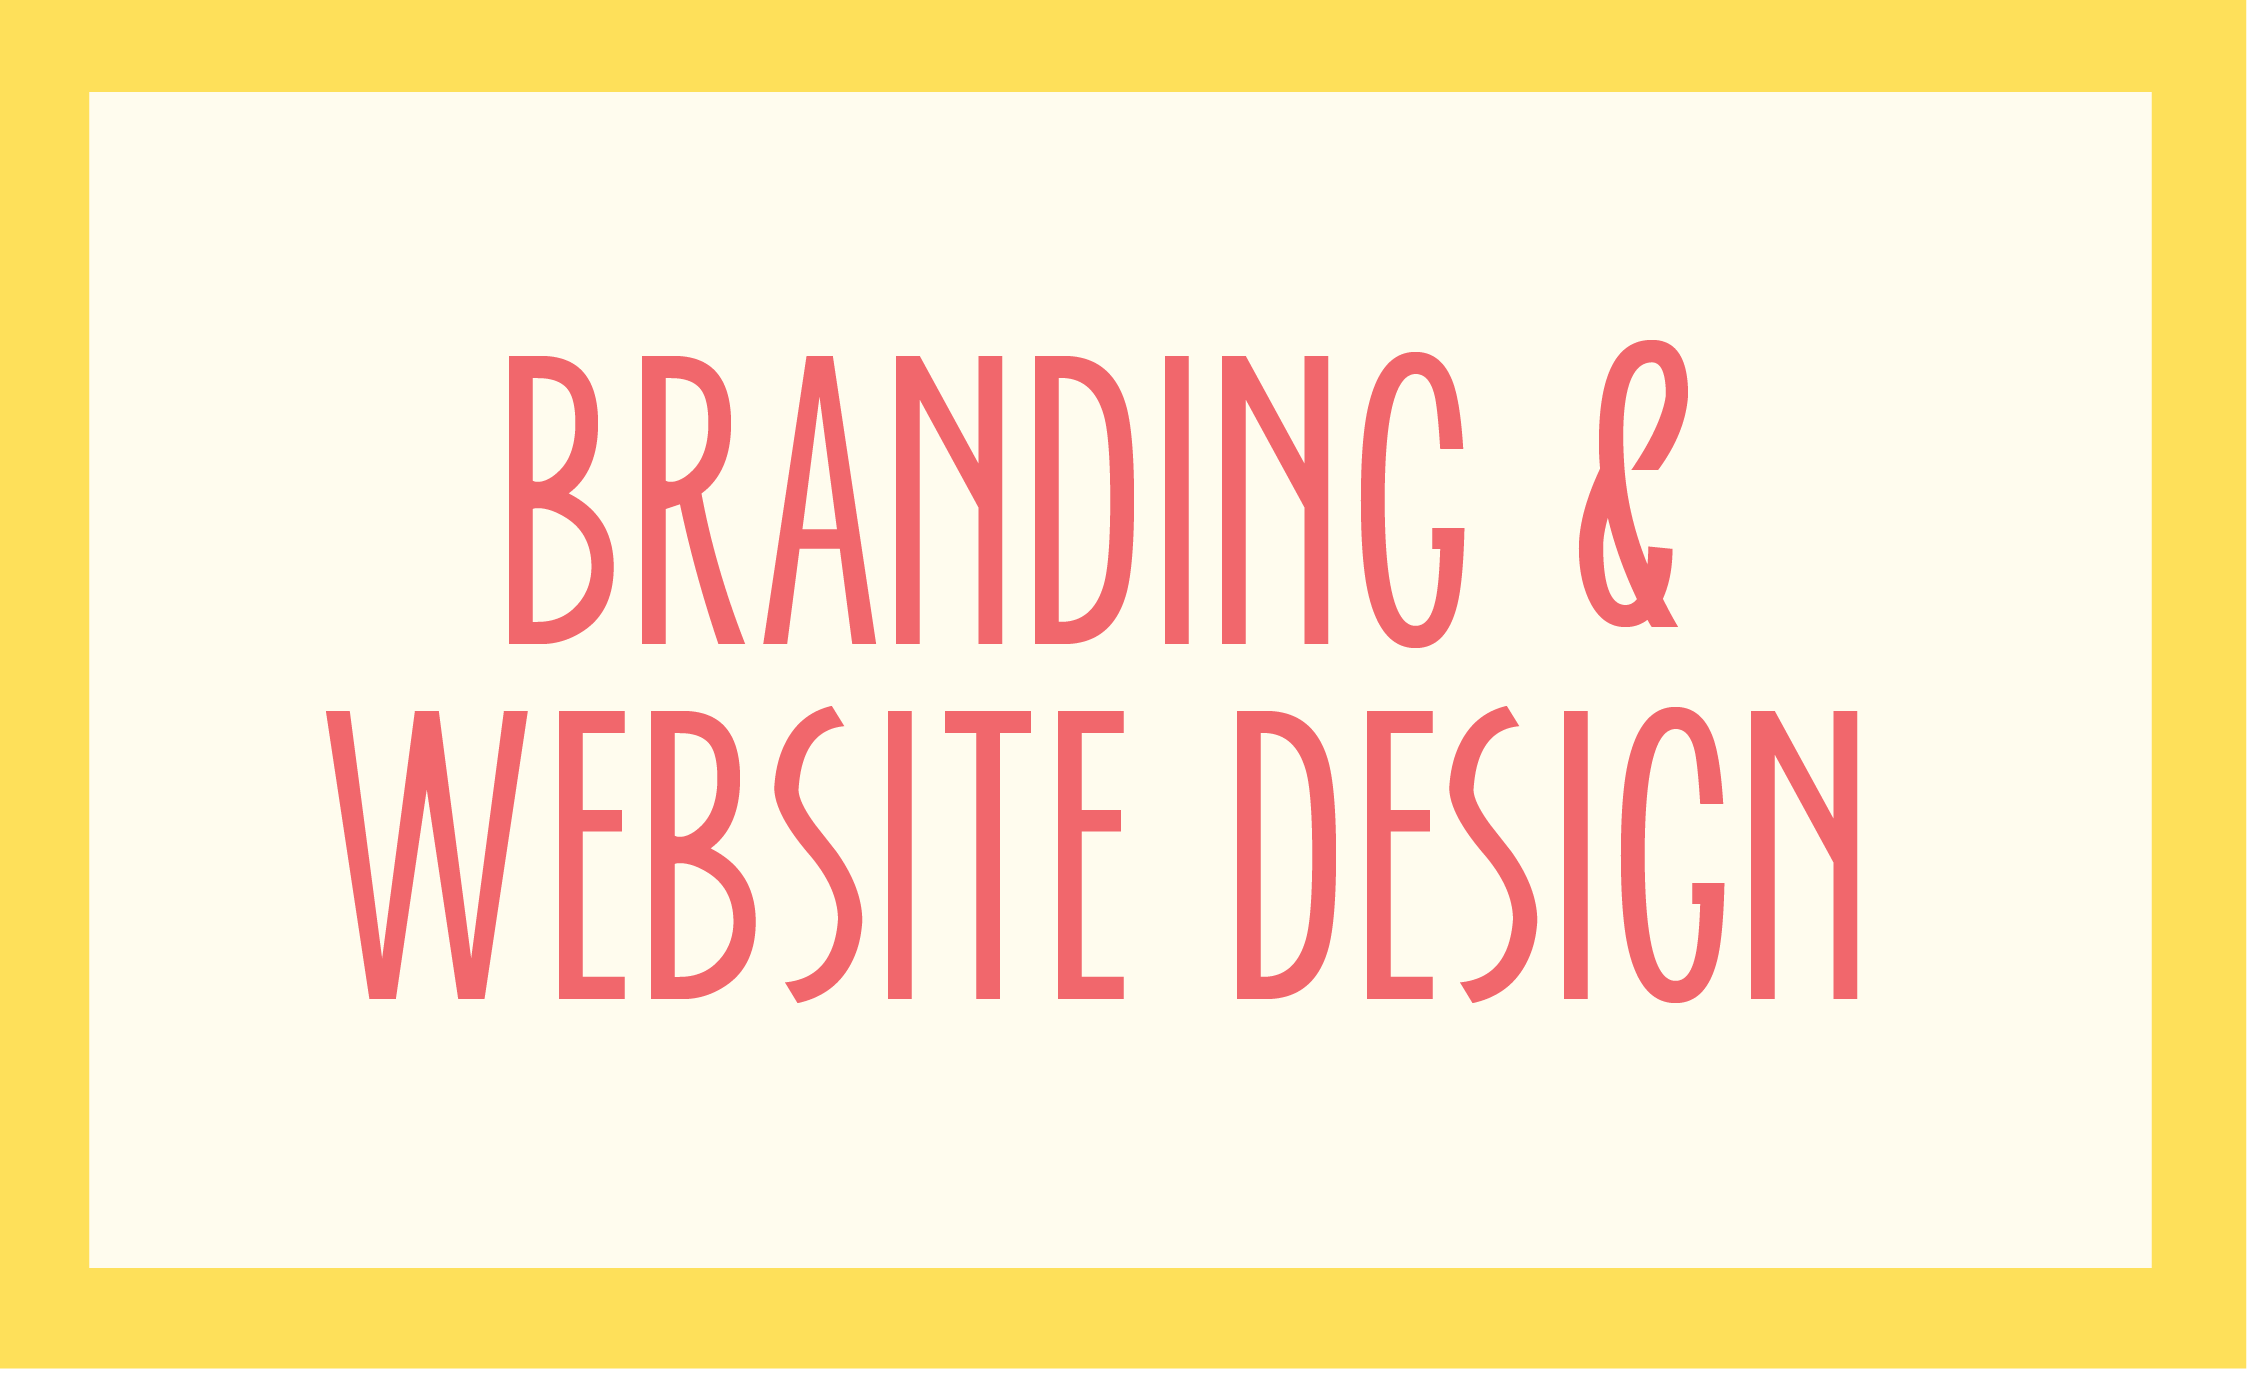 Bold & Pop : Branding and Squarespace website design resources